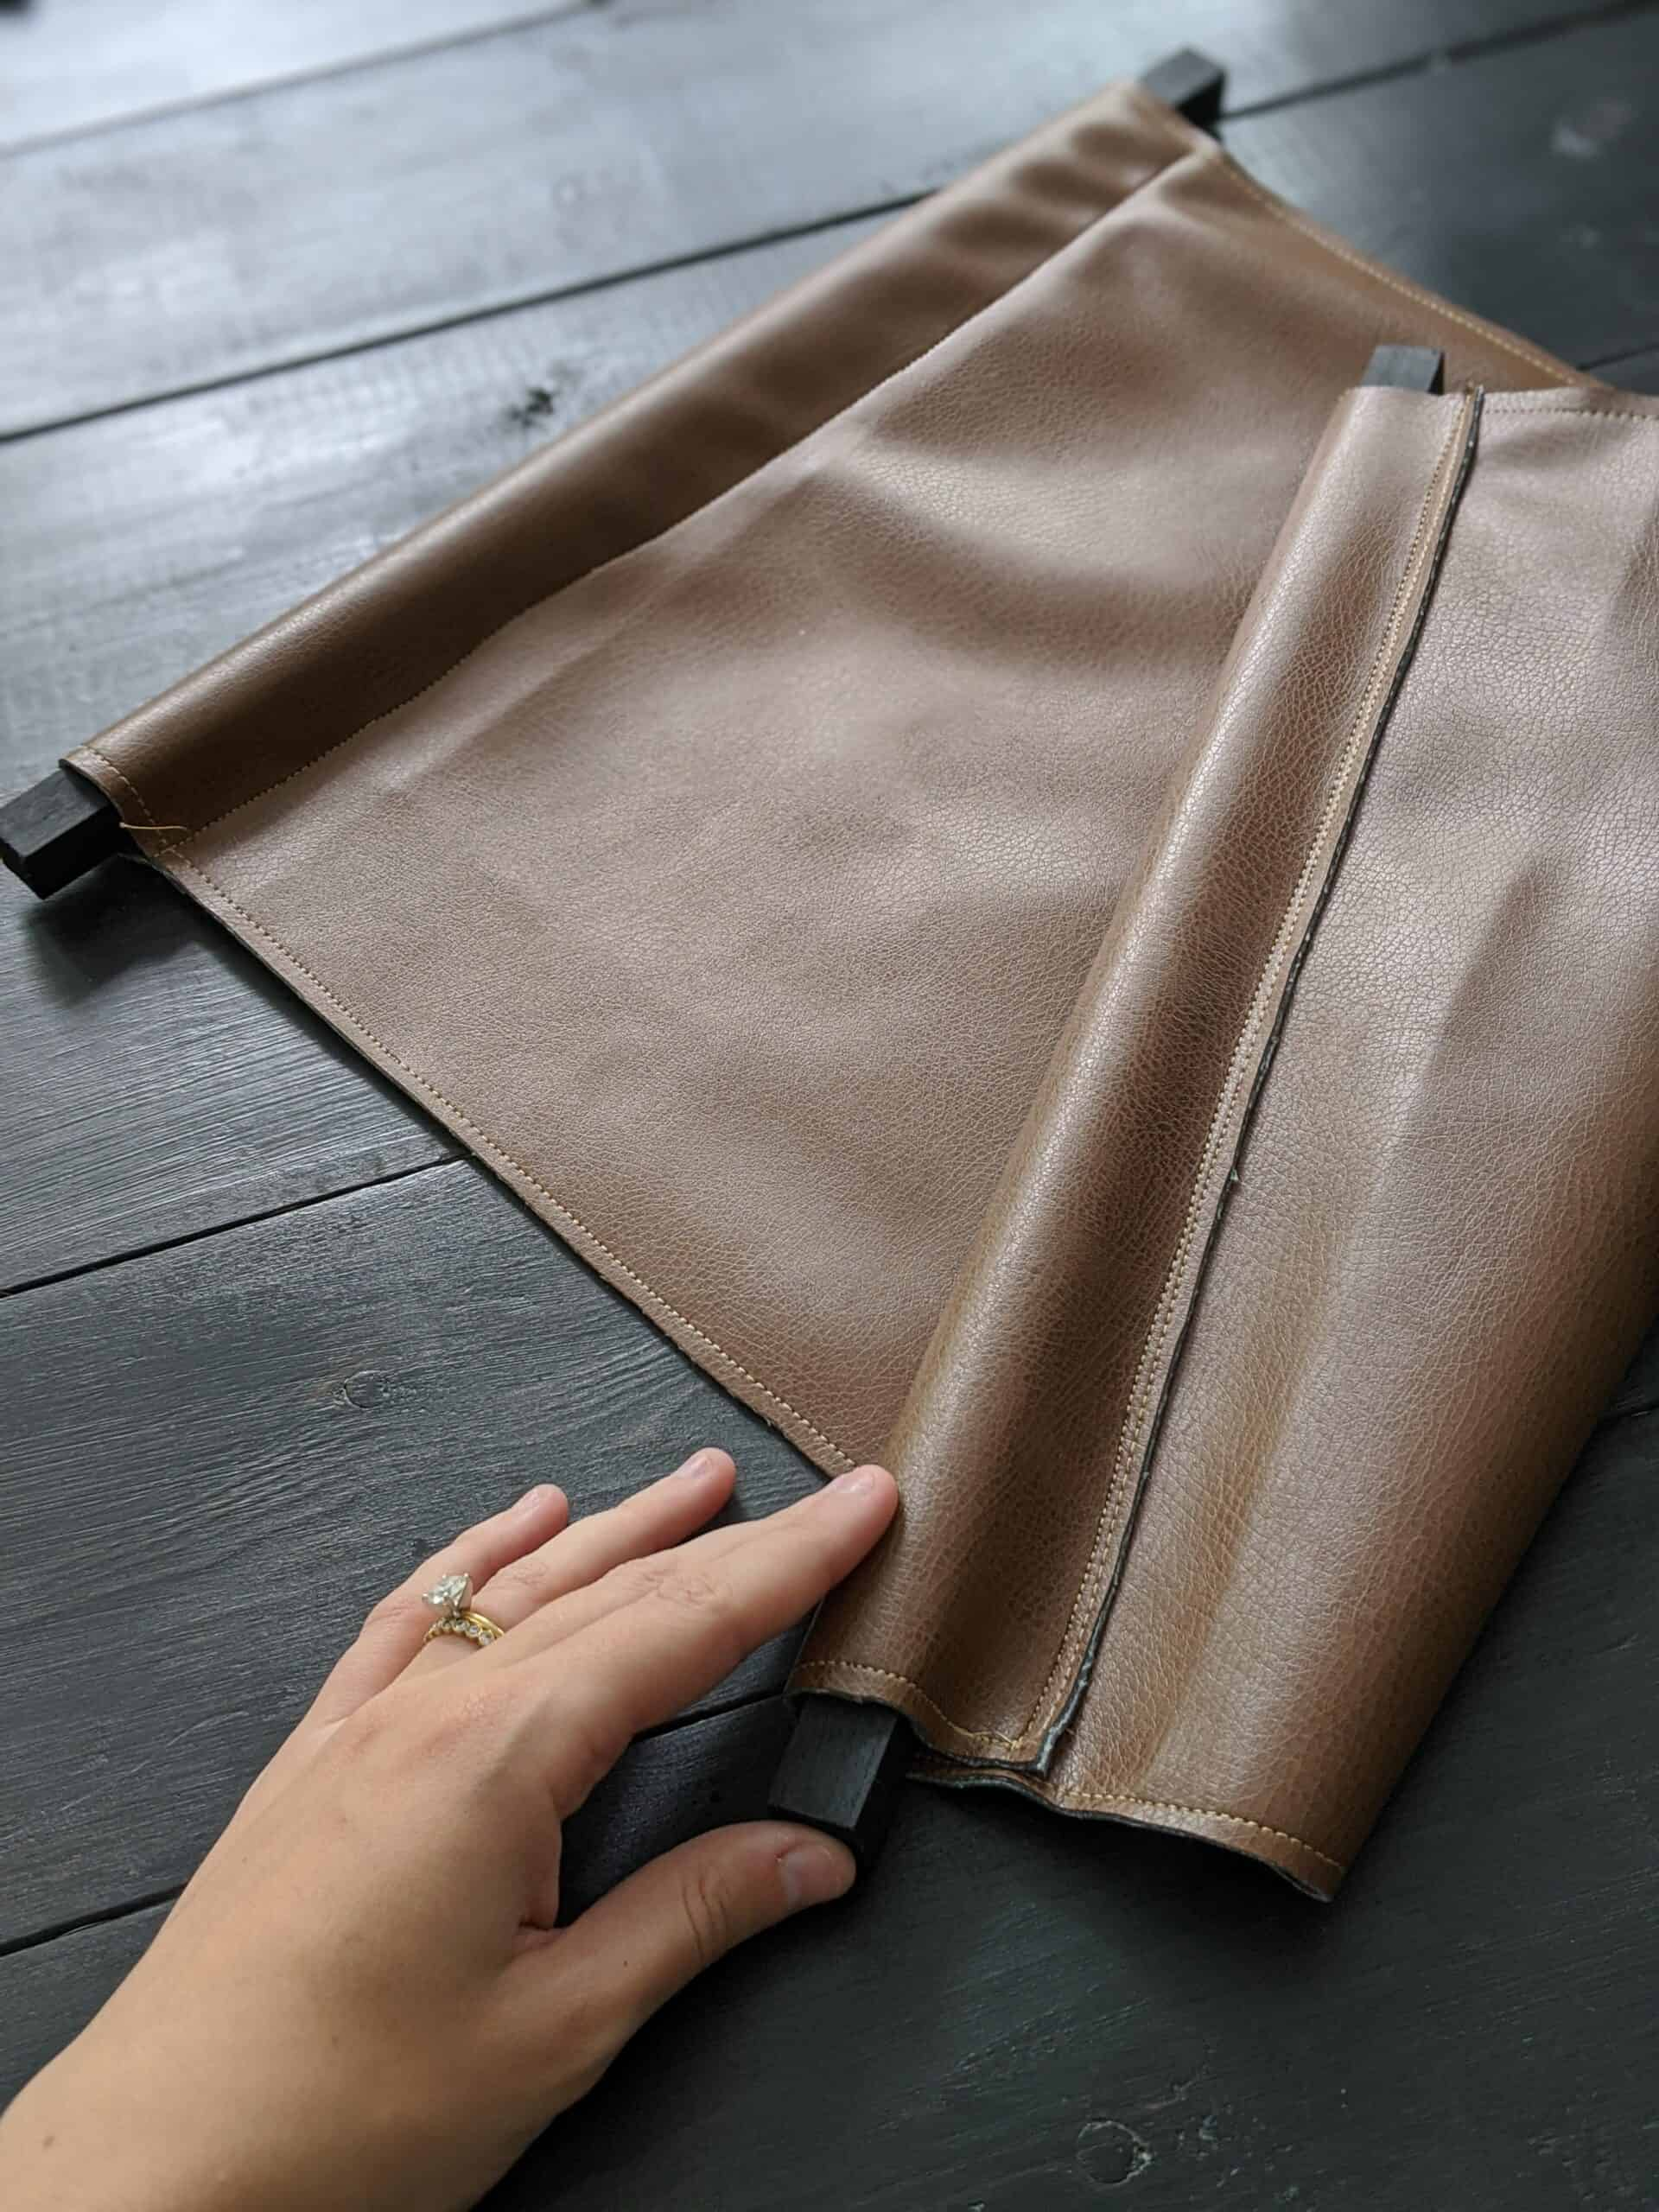 placing square dowel in leather loop